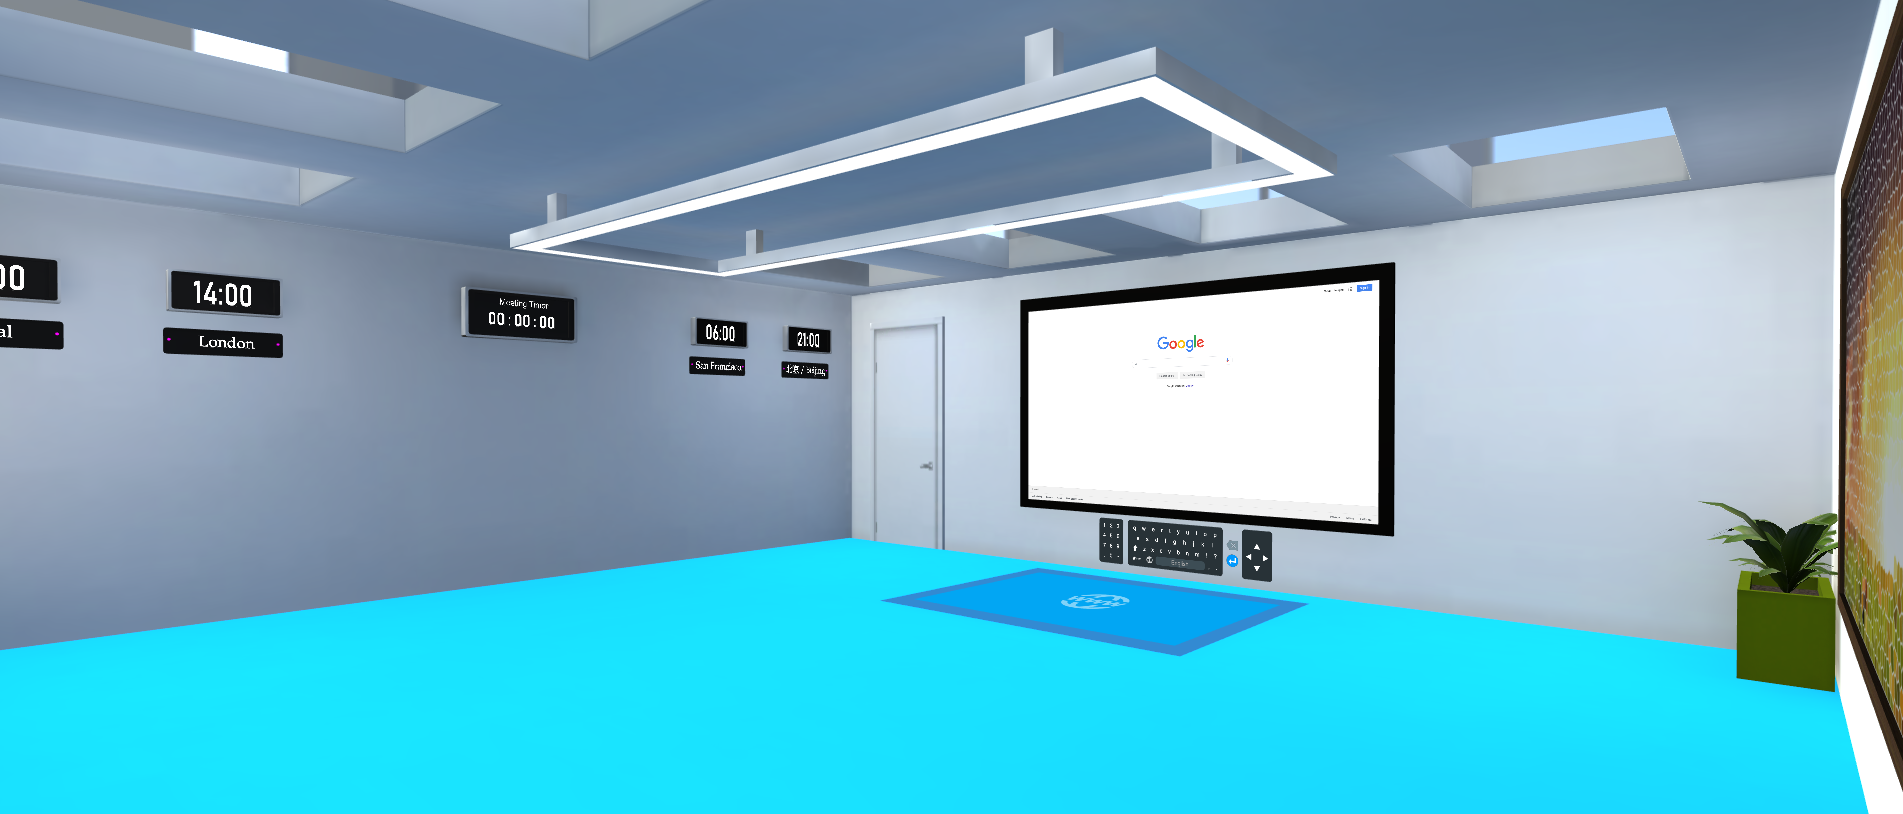 a shot of the web room with a web browser viewer, world clocks and a timer with a plant in the corner